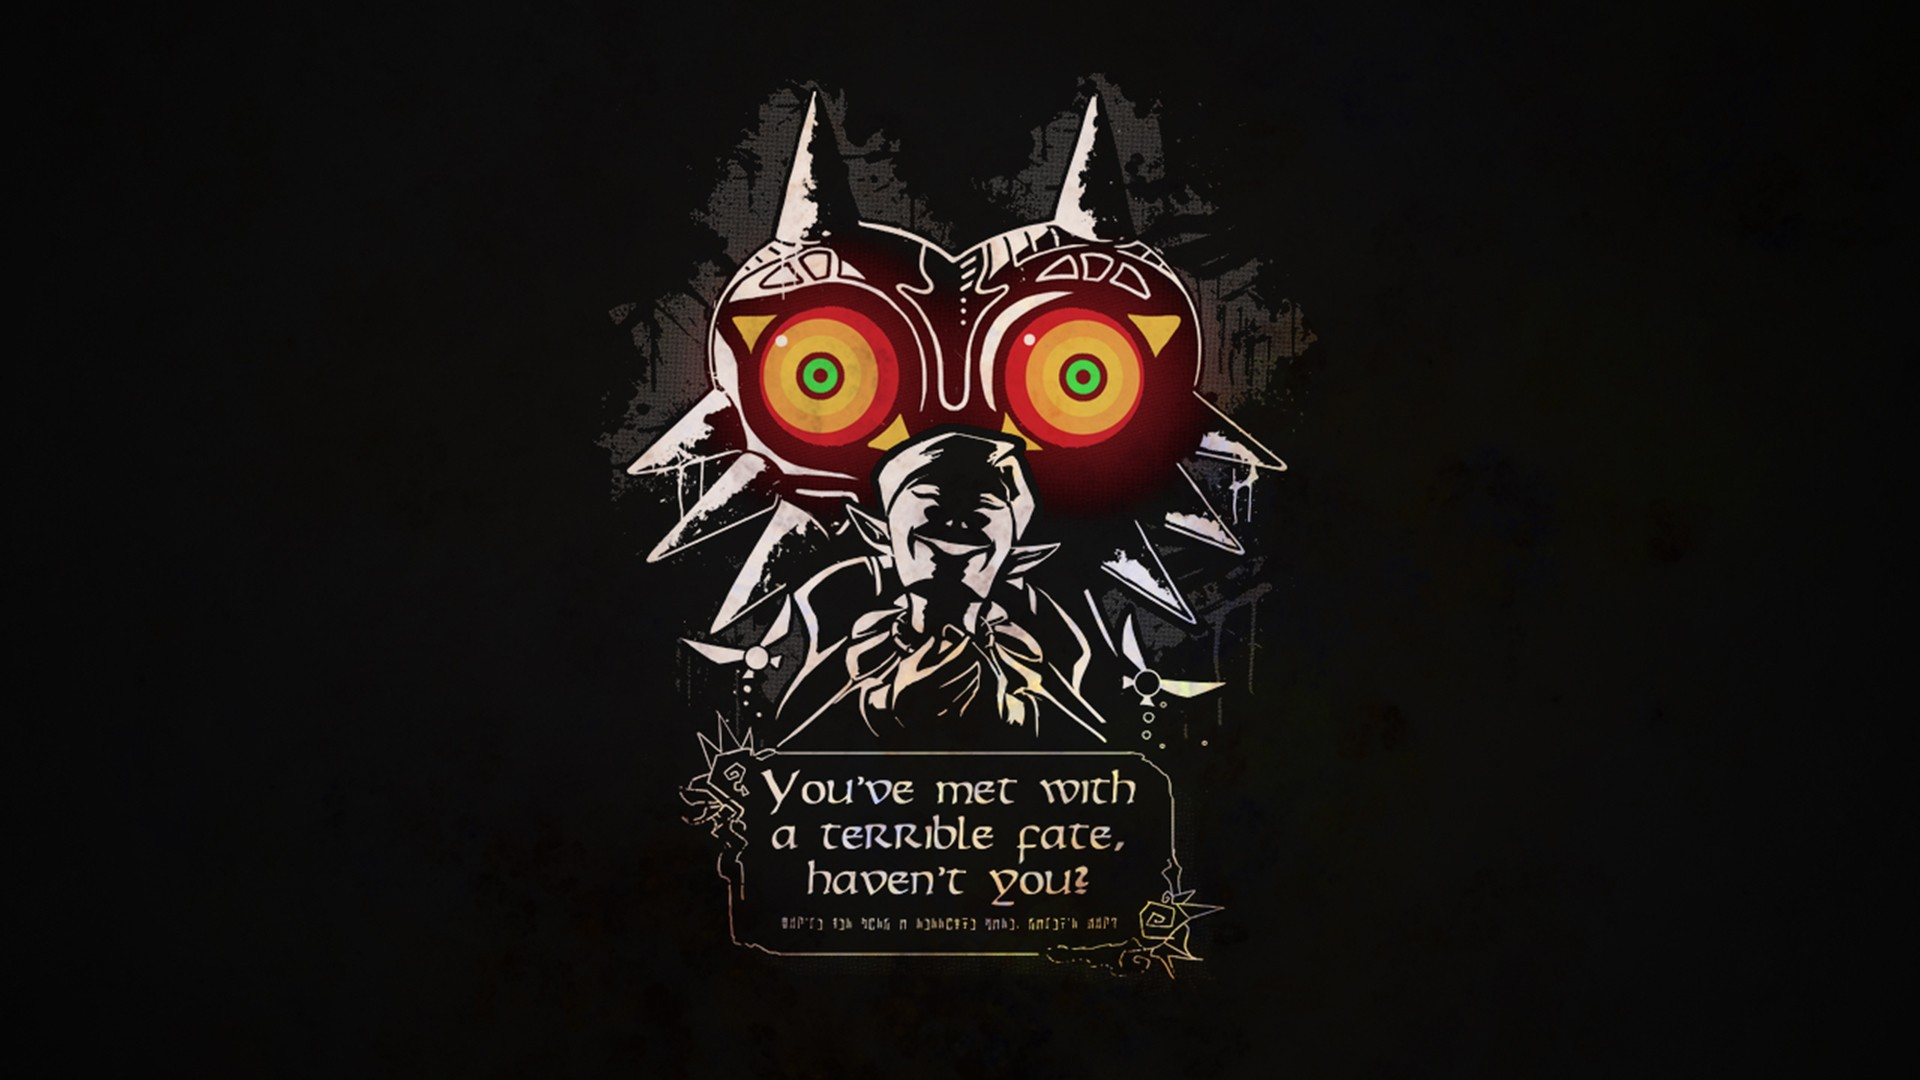 Free Download Zelda Majoras Mask Wallpapers And Images Wallpapers